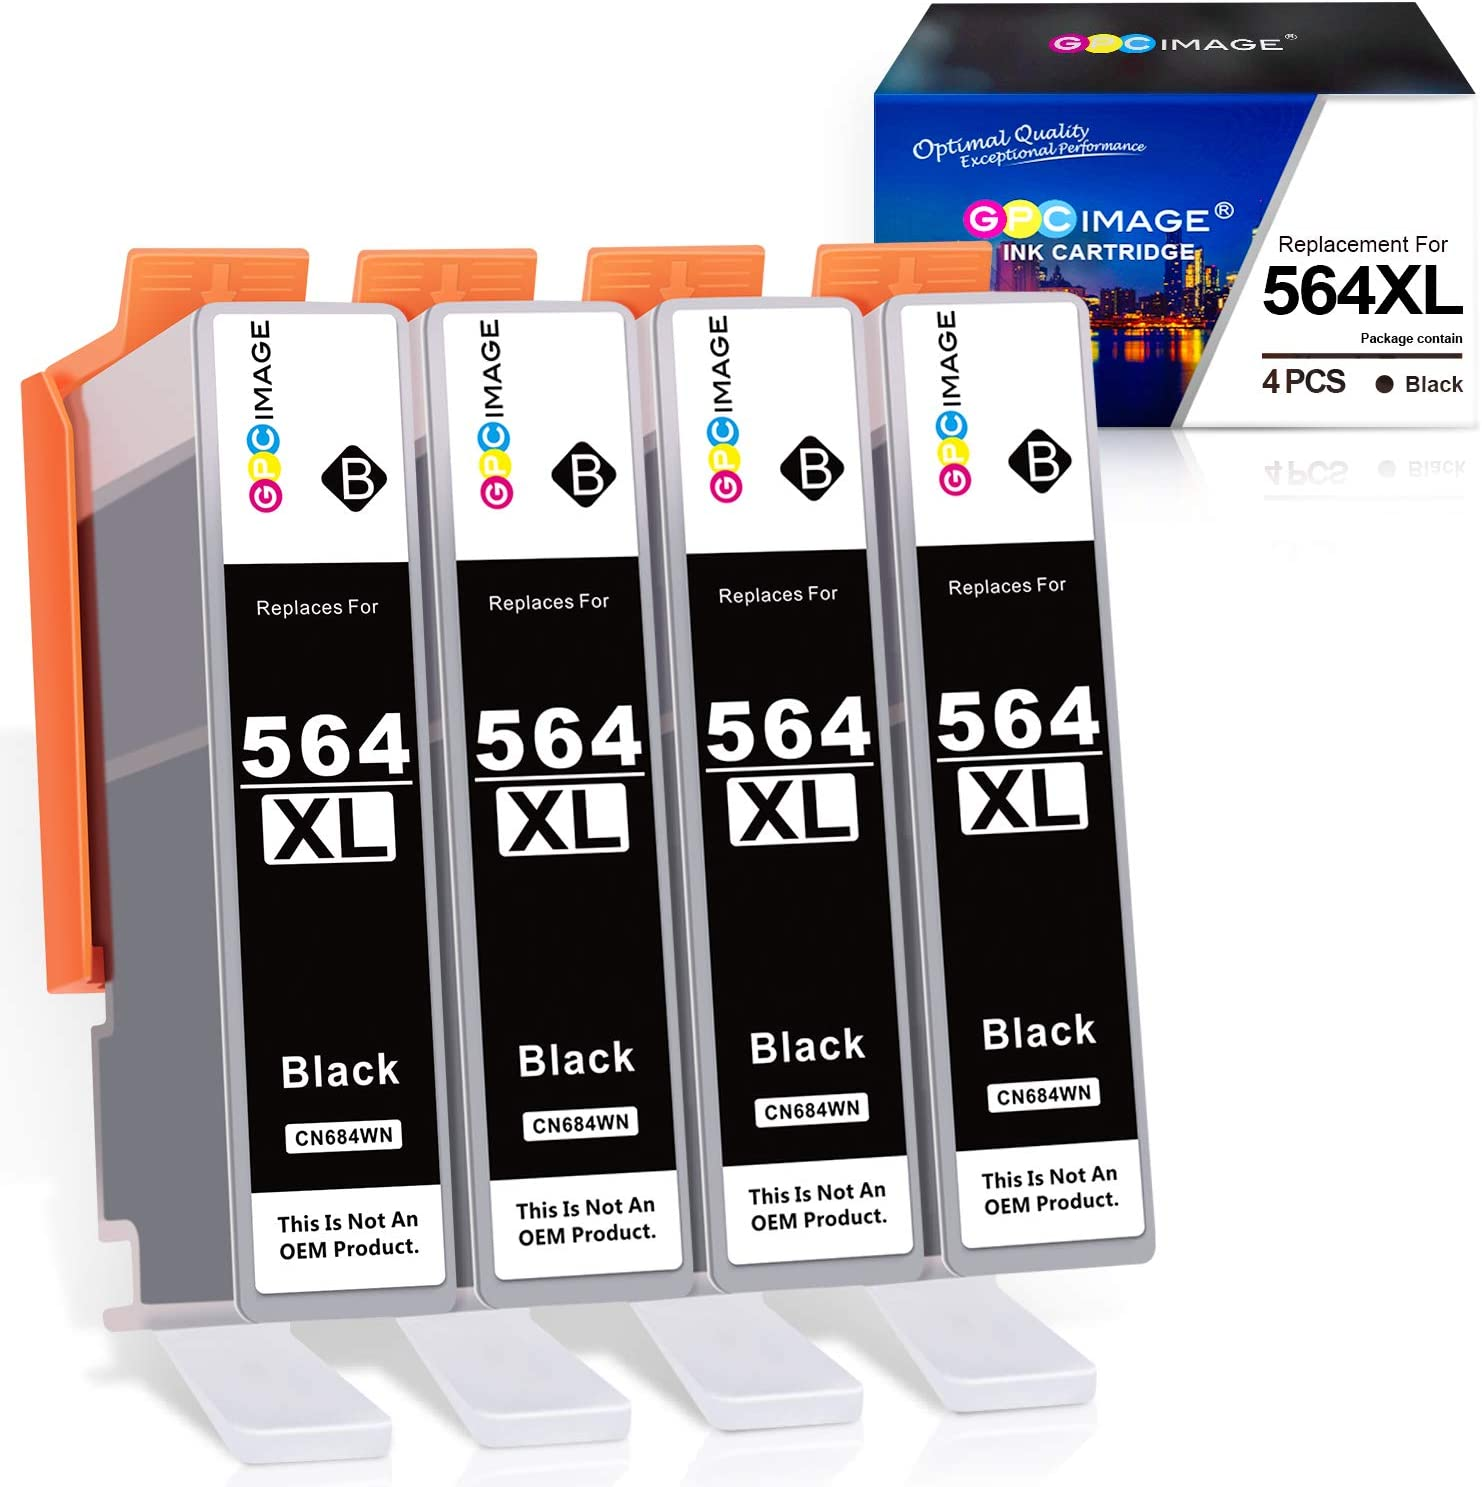 GPC Image Compatible Ink Cartridge Replacement for HP 564XL 564 XL to use with DeskJet 3520 3522 Officejet 4620 Photosmart 5520 6510 7520 7525 Printer Tray (4 Black)